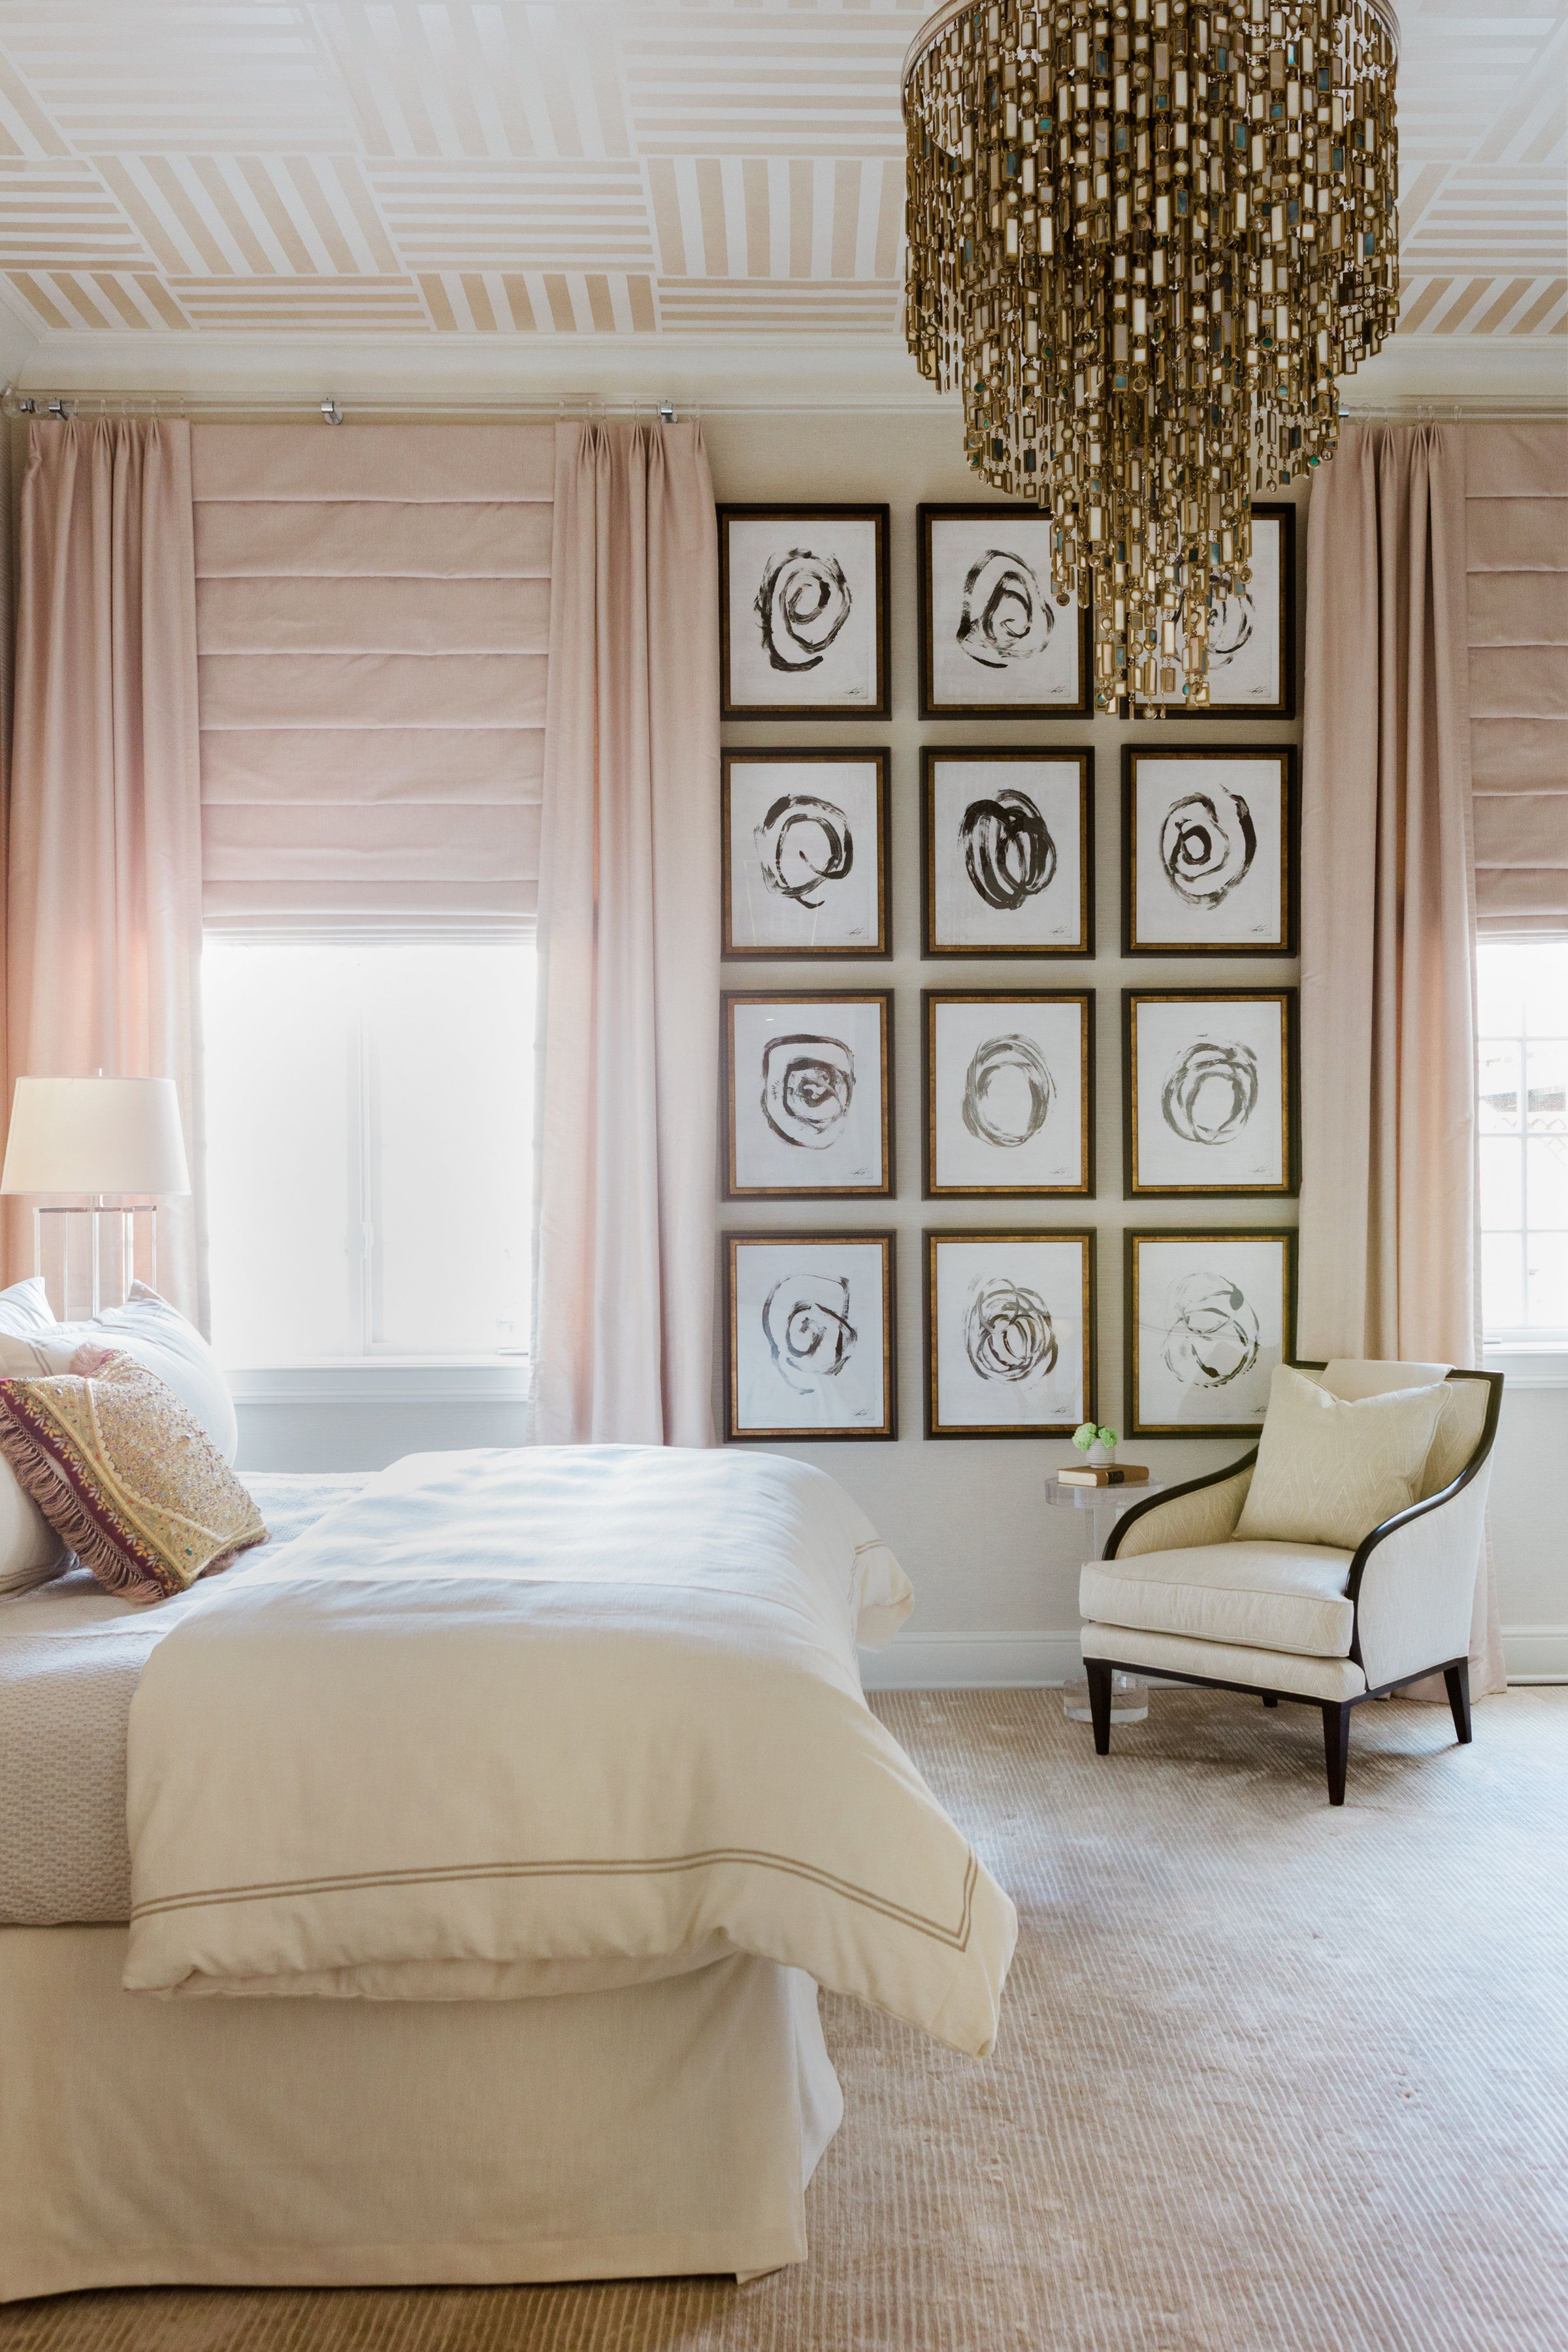 LAKEWOOD ANTHONY MICHAEL INTERIOR DESIGN Gallery wall